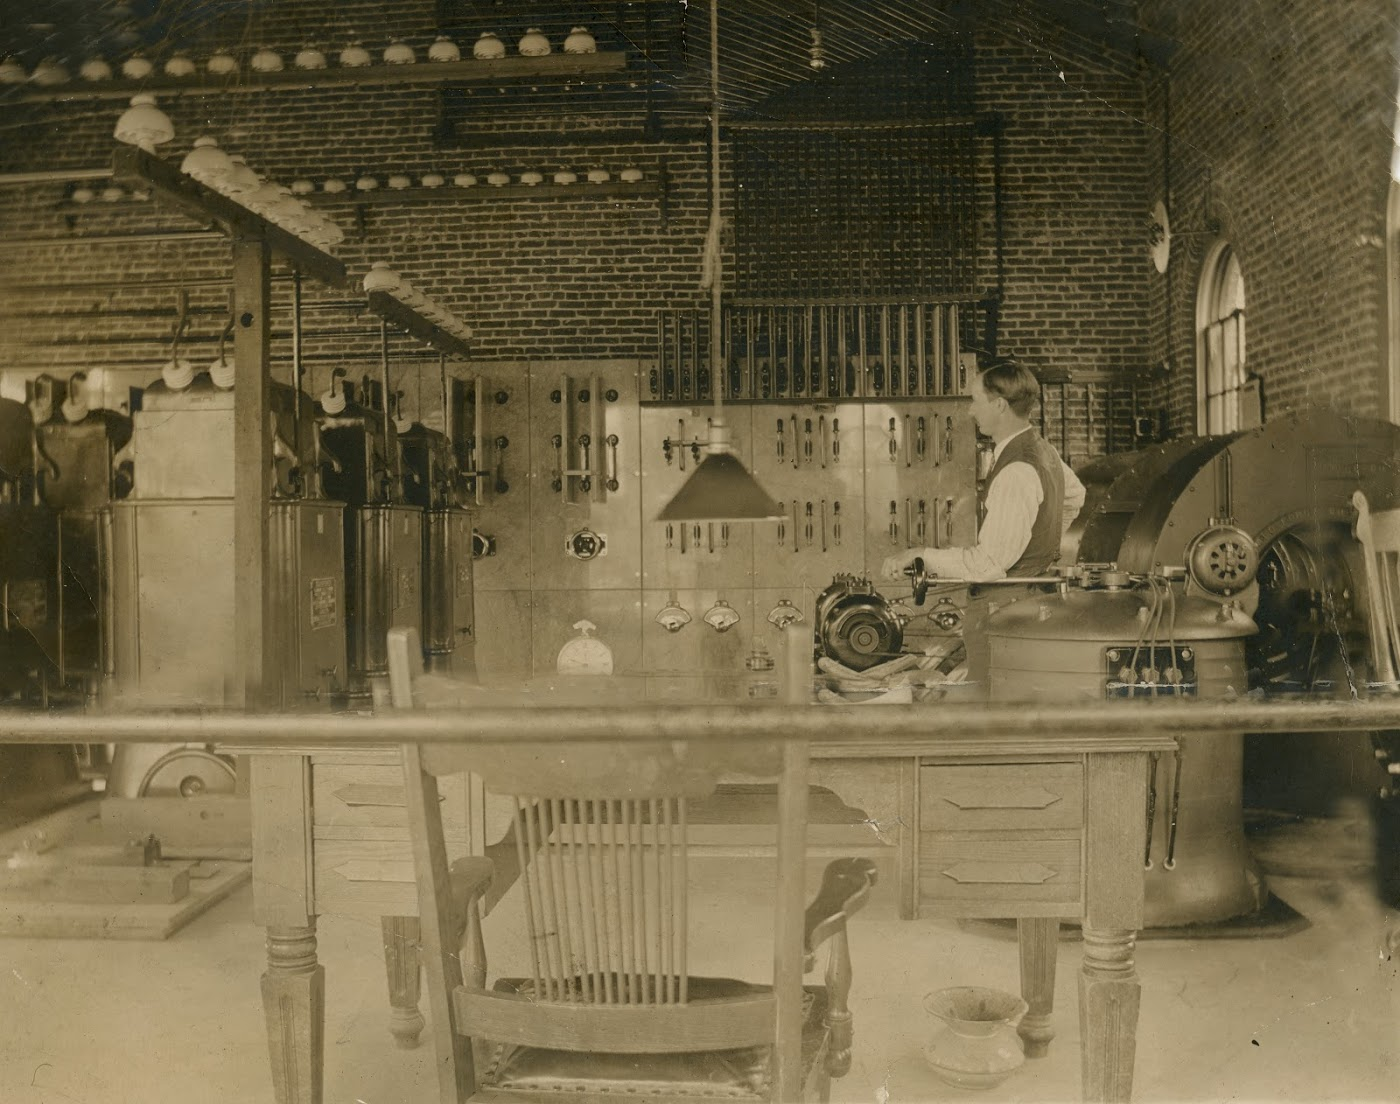 Photo 2318.0016: West Kootenay Power & Light Substation in Rossland, showing electrician William Aldrich hard at work. Date unknown.